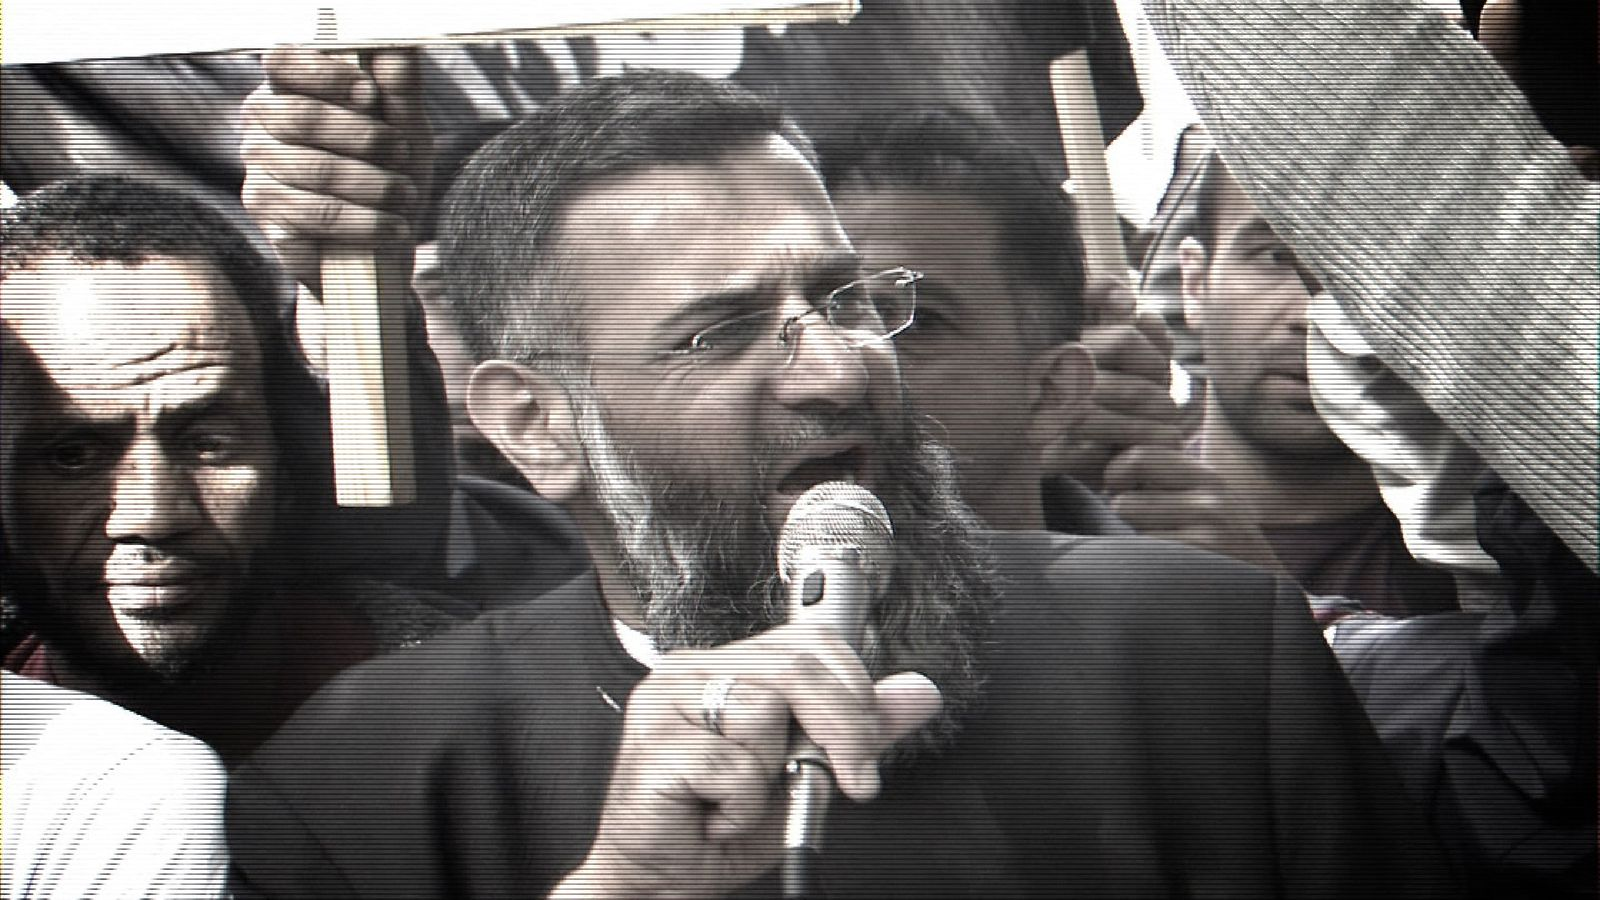 Anjem Choudary's brand of hate has been linked to London attackers